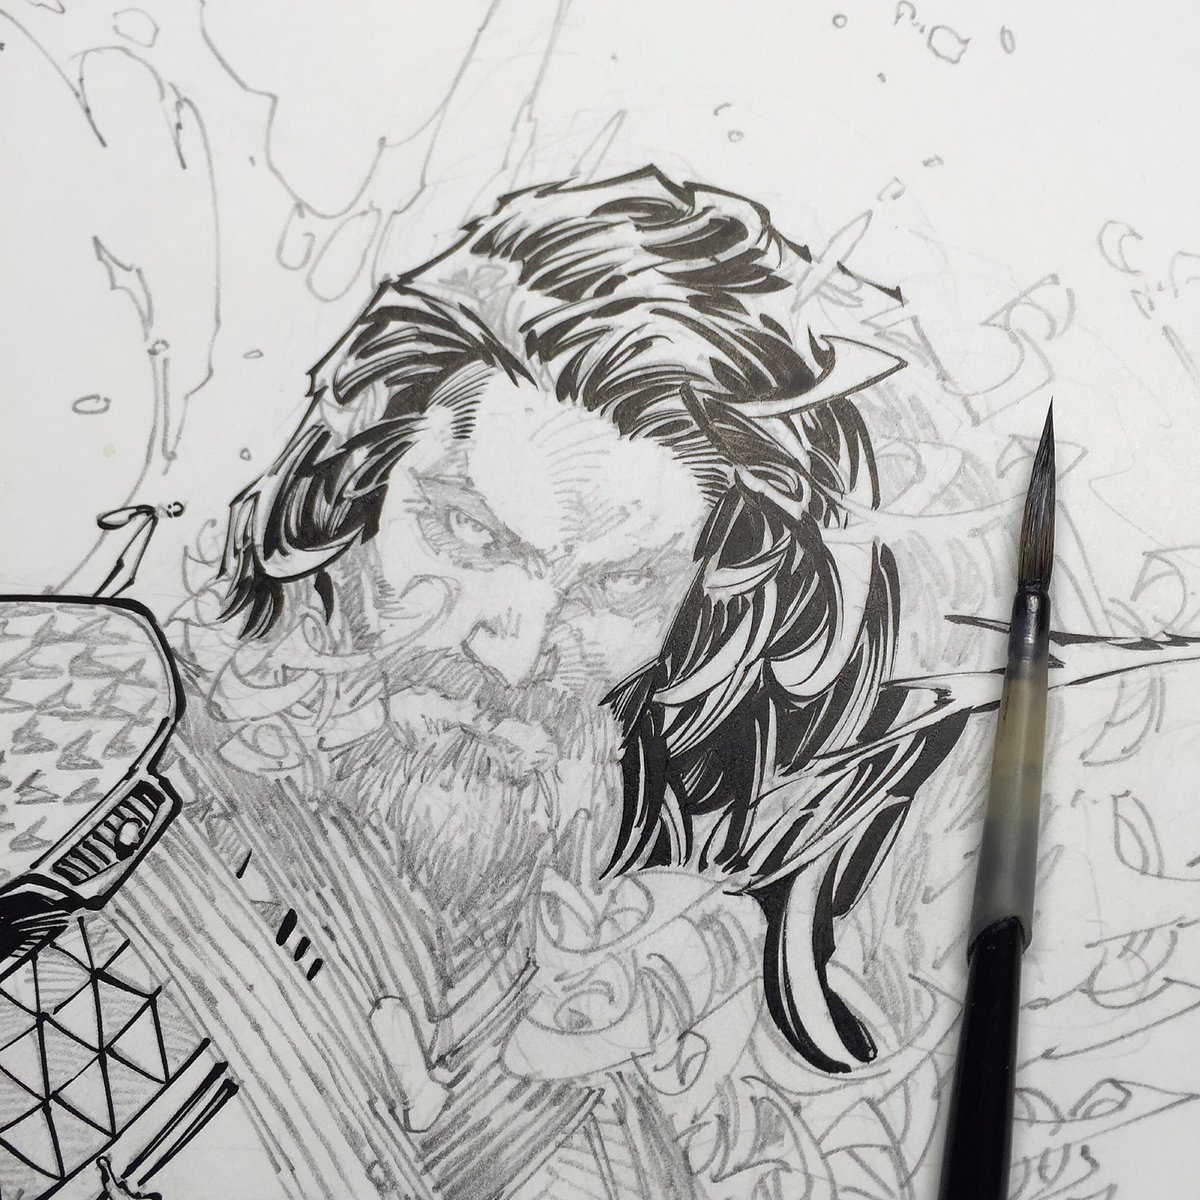 Aquaman commission wip over @Demonpuppy #Aquaman #dccomics #inks #brettbooth #jonathanglapion #commission https://t.co/mhFj8xFcIh